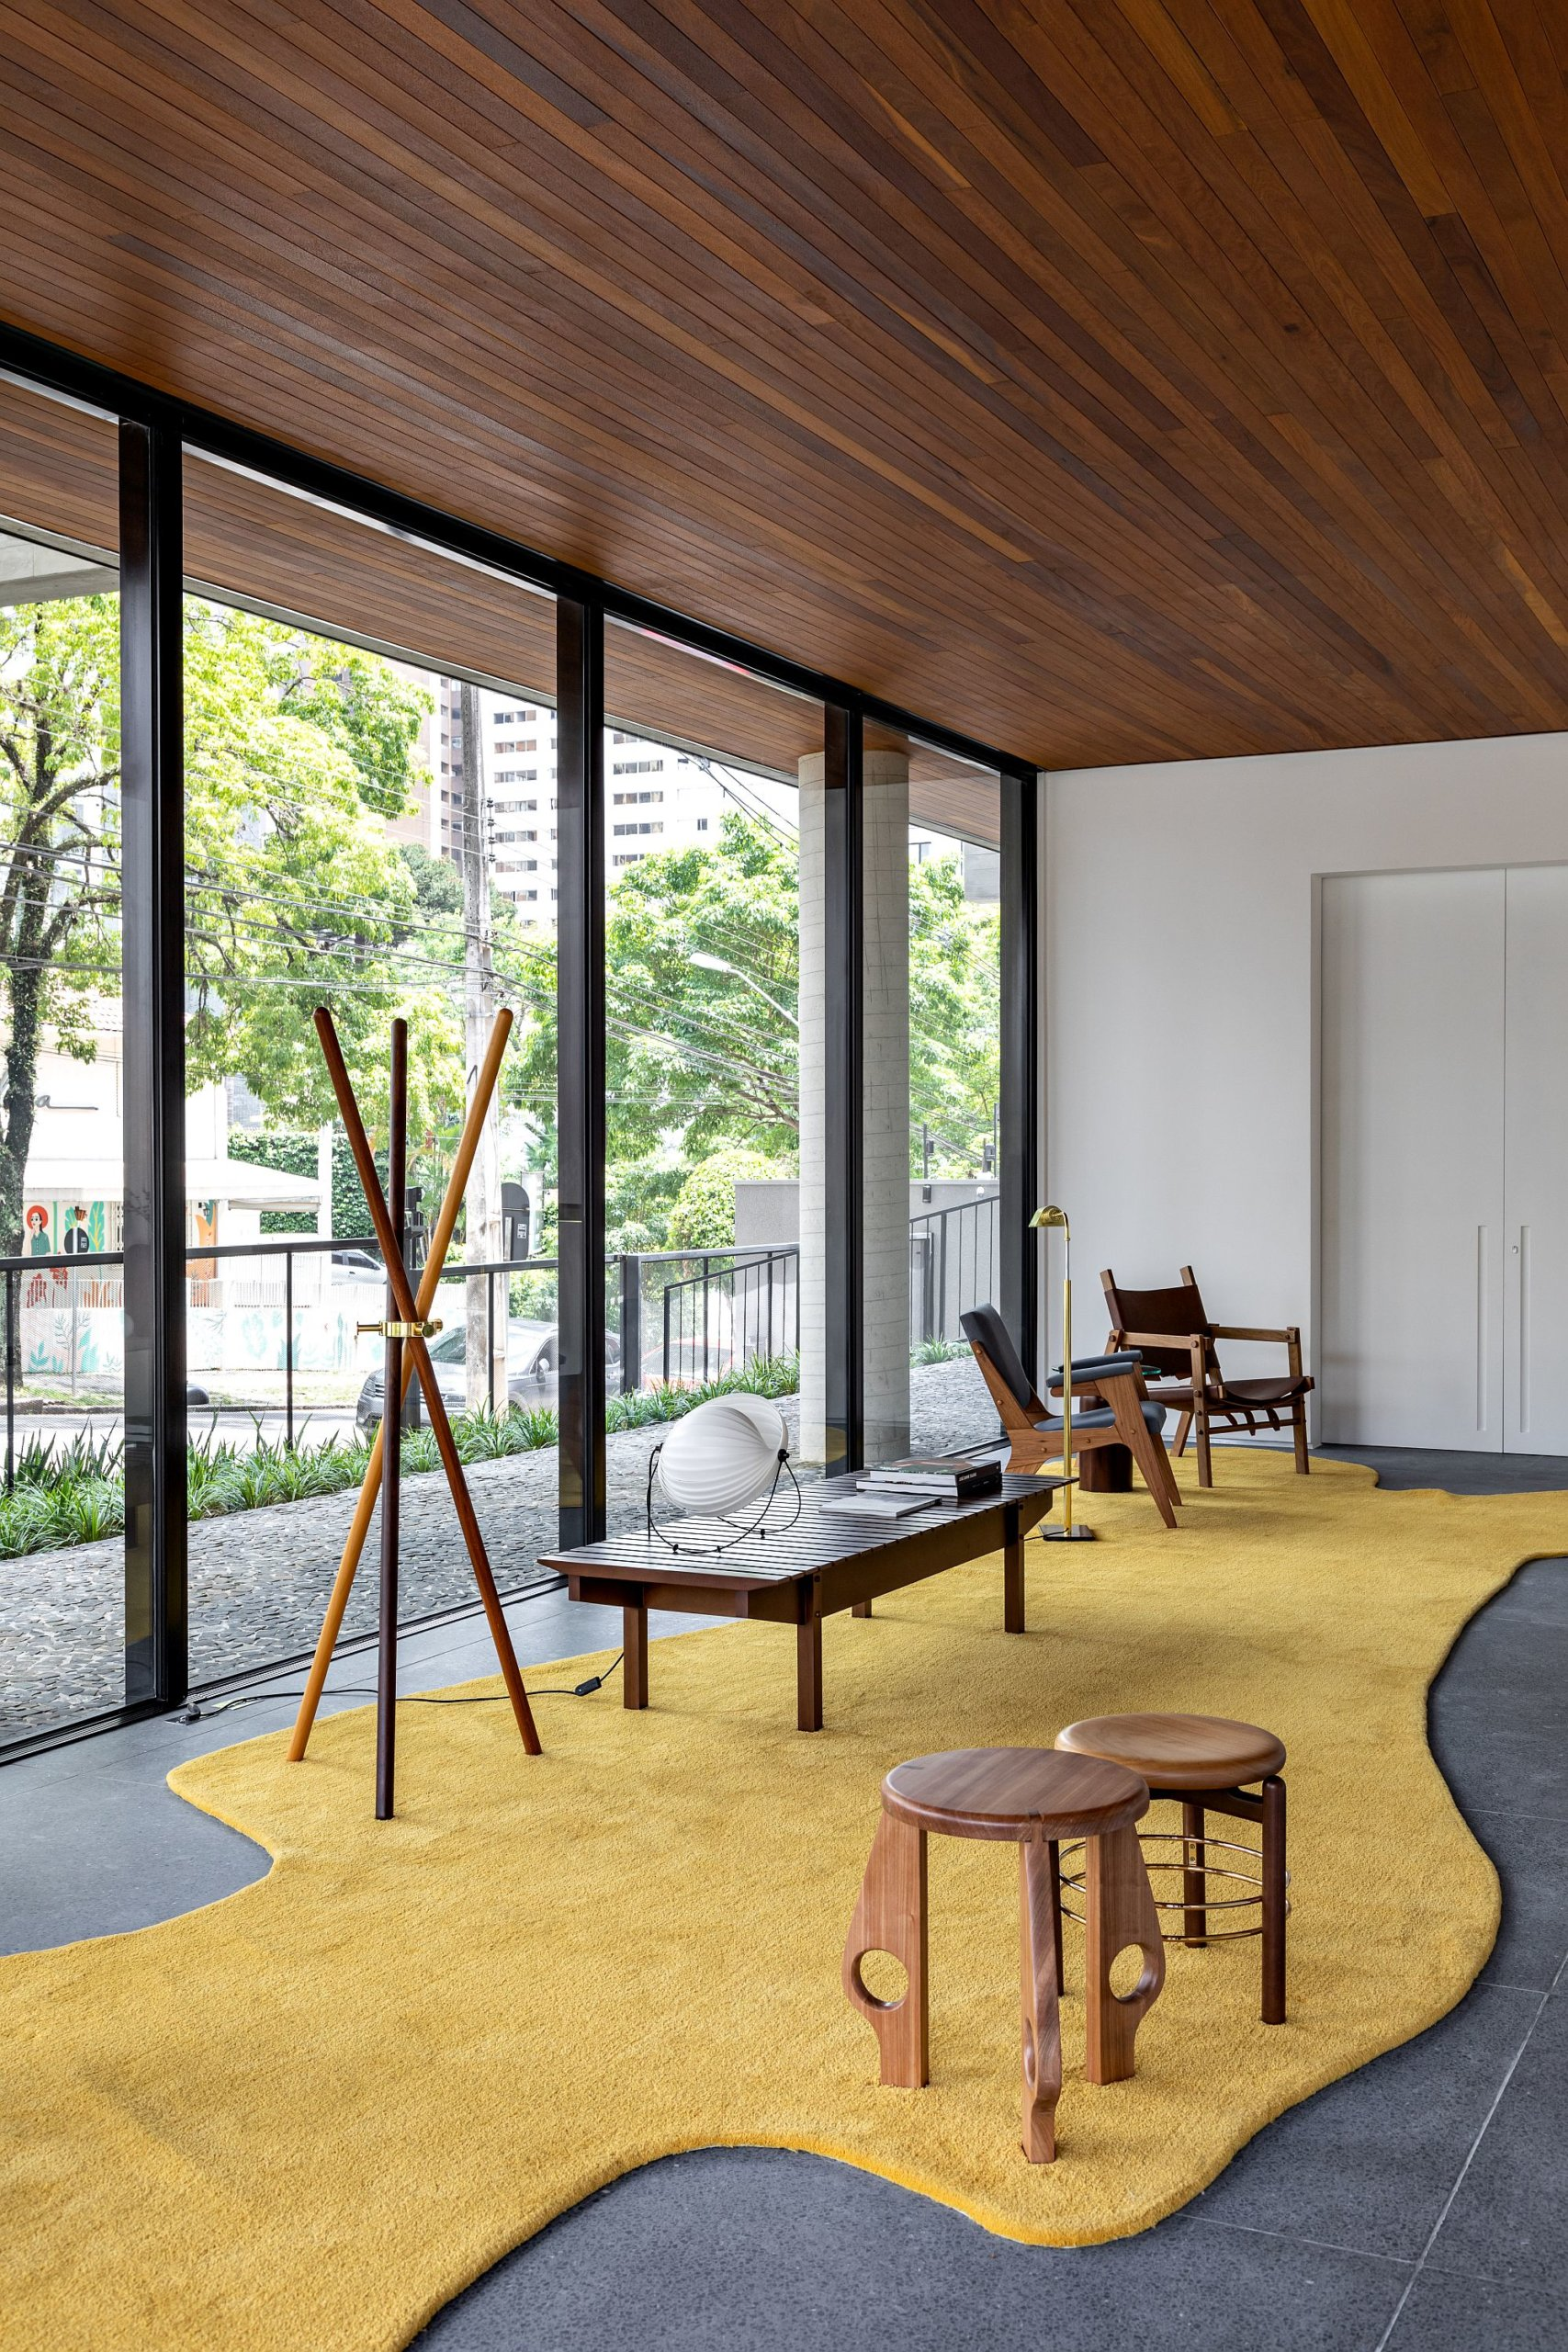 Brilliant-collection-of-iconic-modern-decor-is-showcased-in-the-hall-15224-scaled